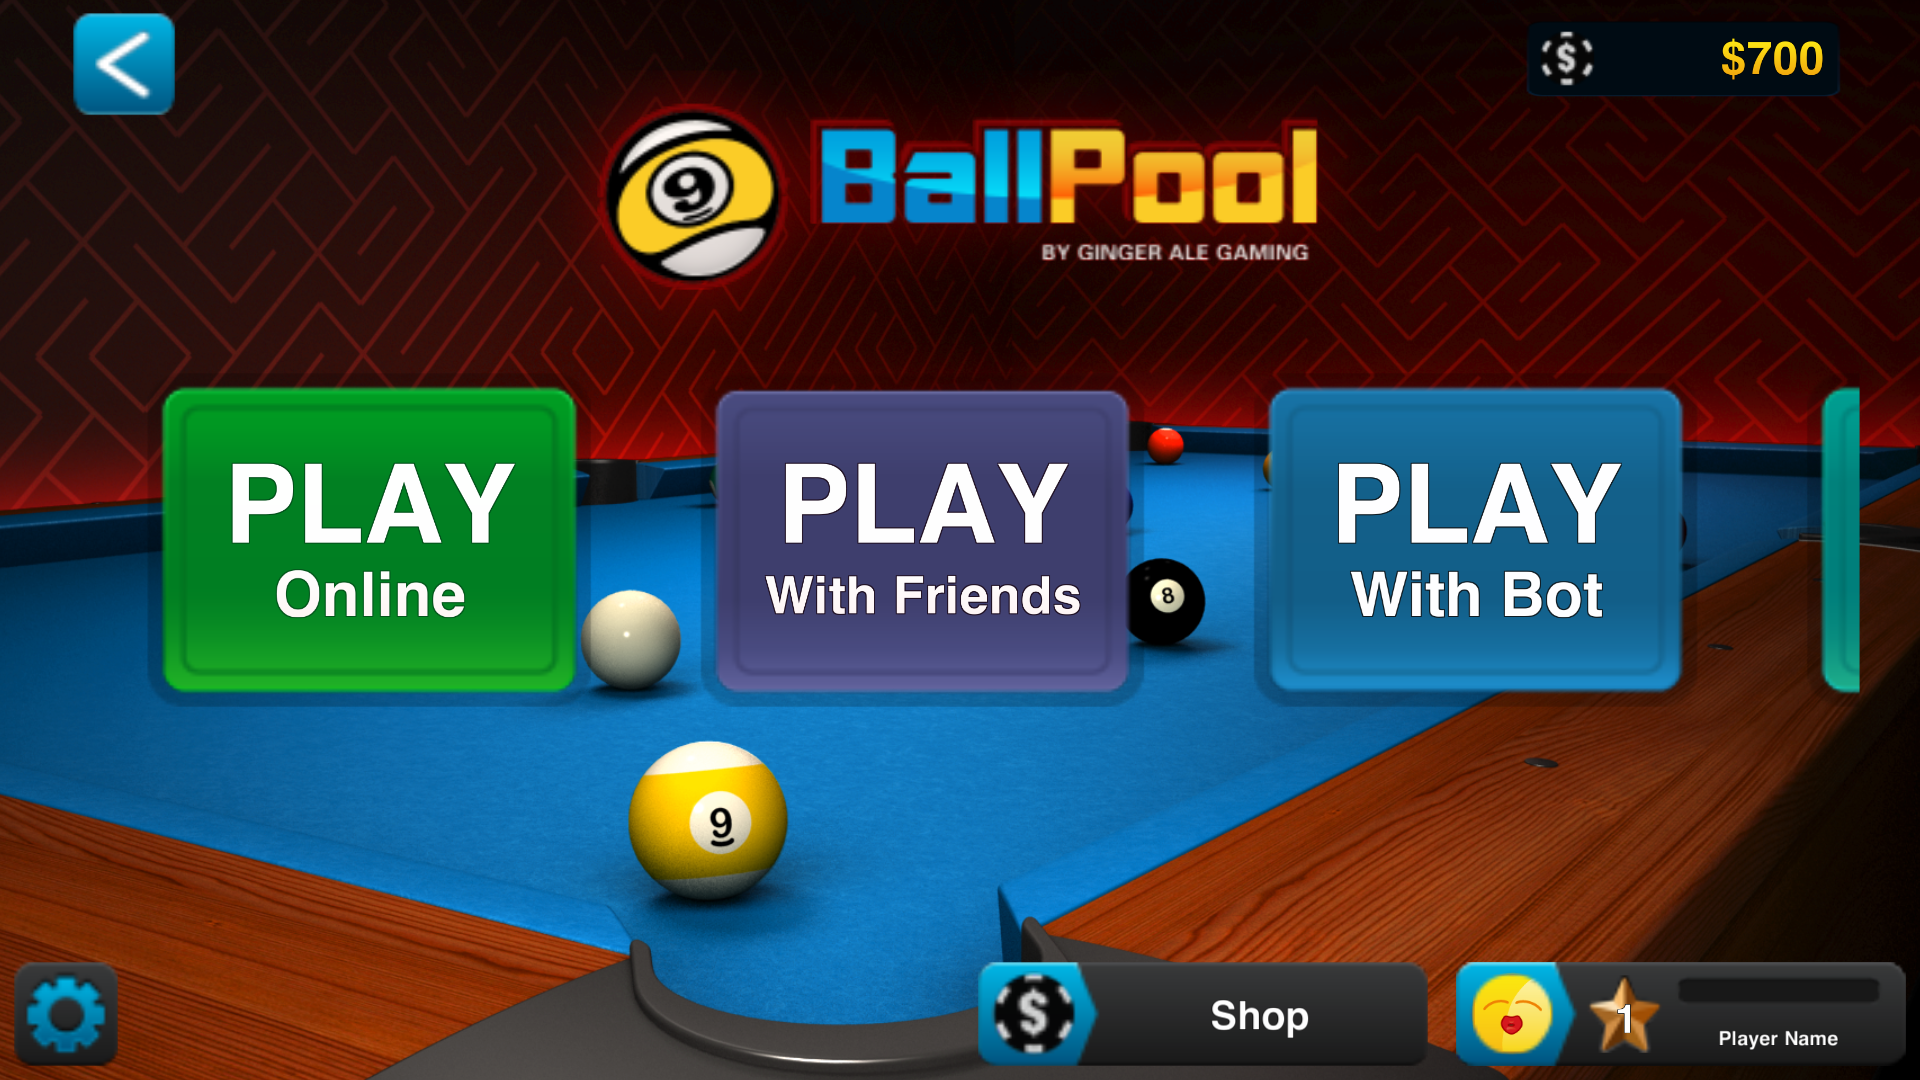 9 ball pool for tablet: Amazon.es: Appstore para Android